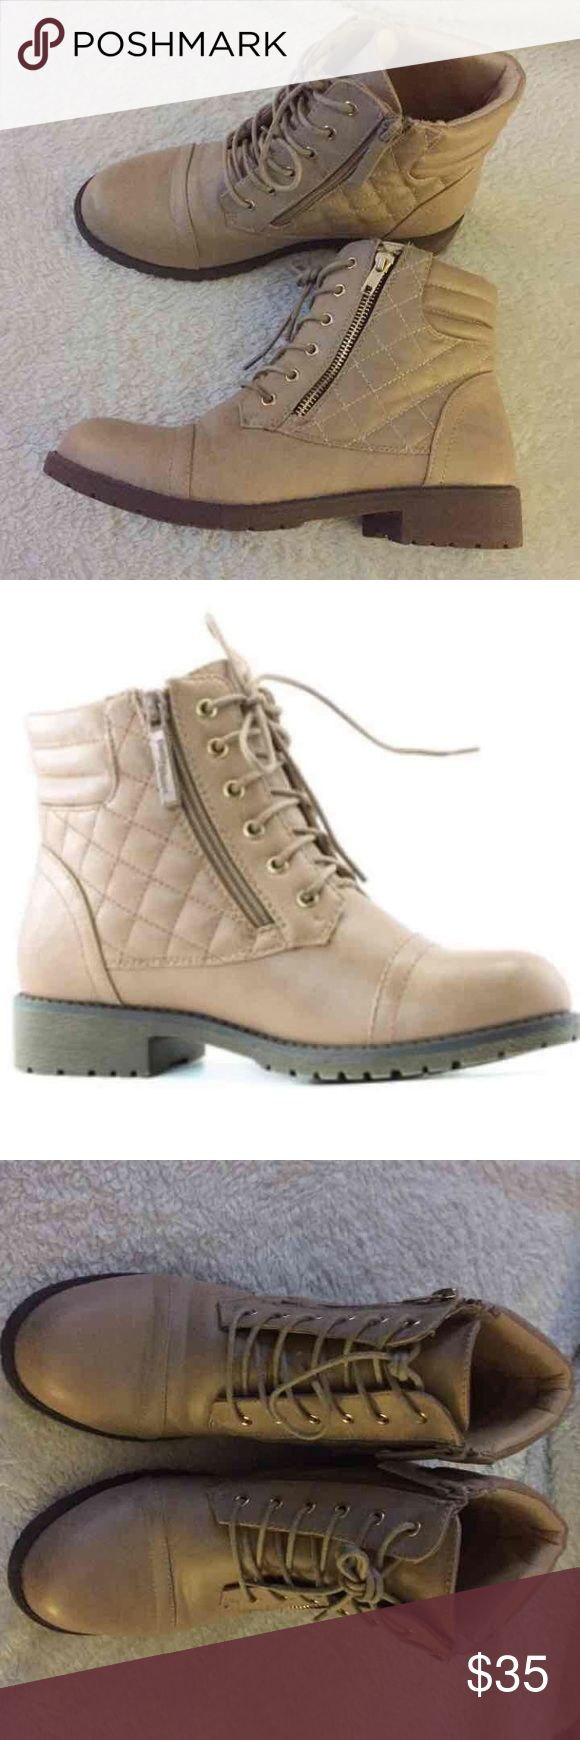 Women's Ankle Boots Size 9 Women's military style combat boots Zipper on both sides- one to unzip shoe and other zipper is a hidden pocket for money/cards etc Only worn a few times Shoes Ankle Boots & Booties